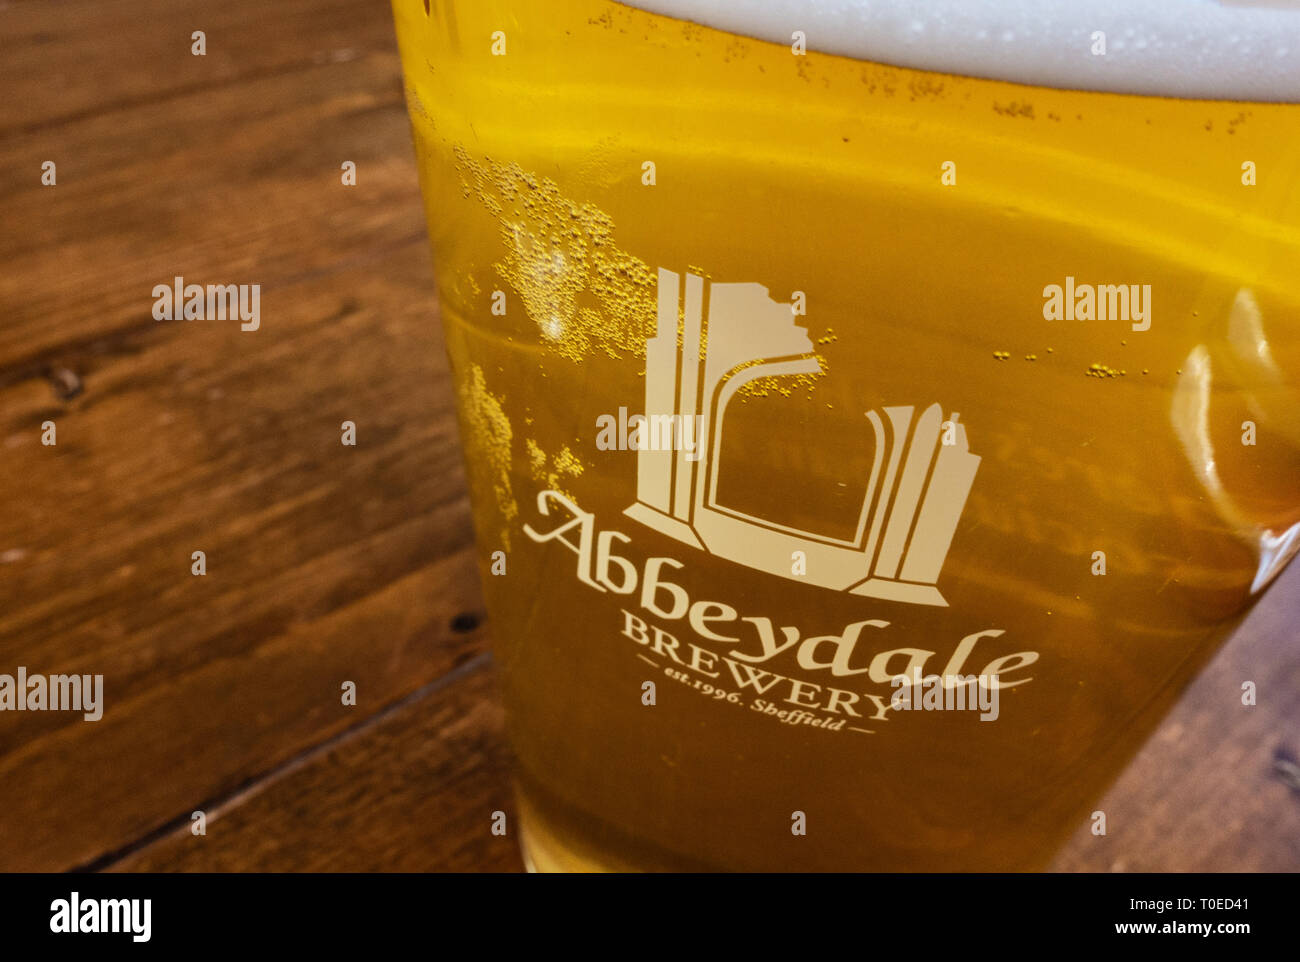 View looking downwards at a freshly drawn pint of Abbeydale brewed ale, showing the brewery logo - Stock Image